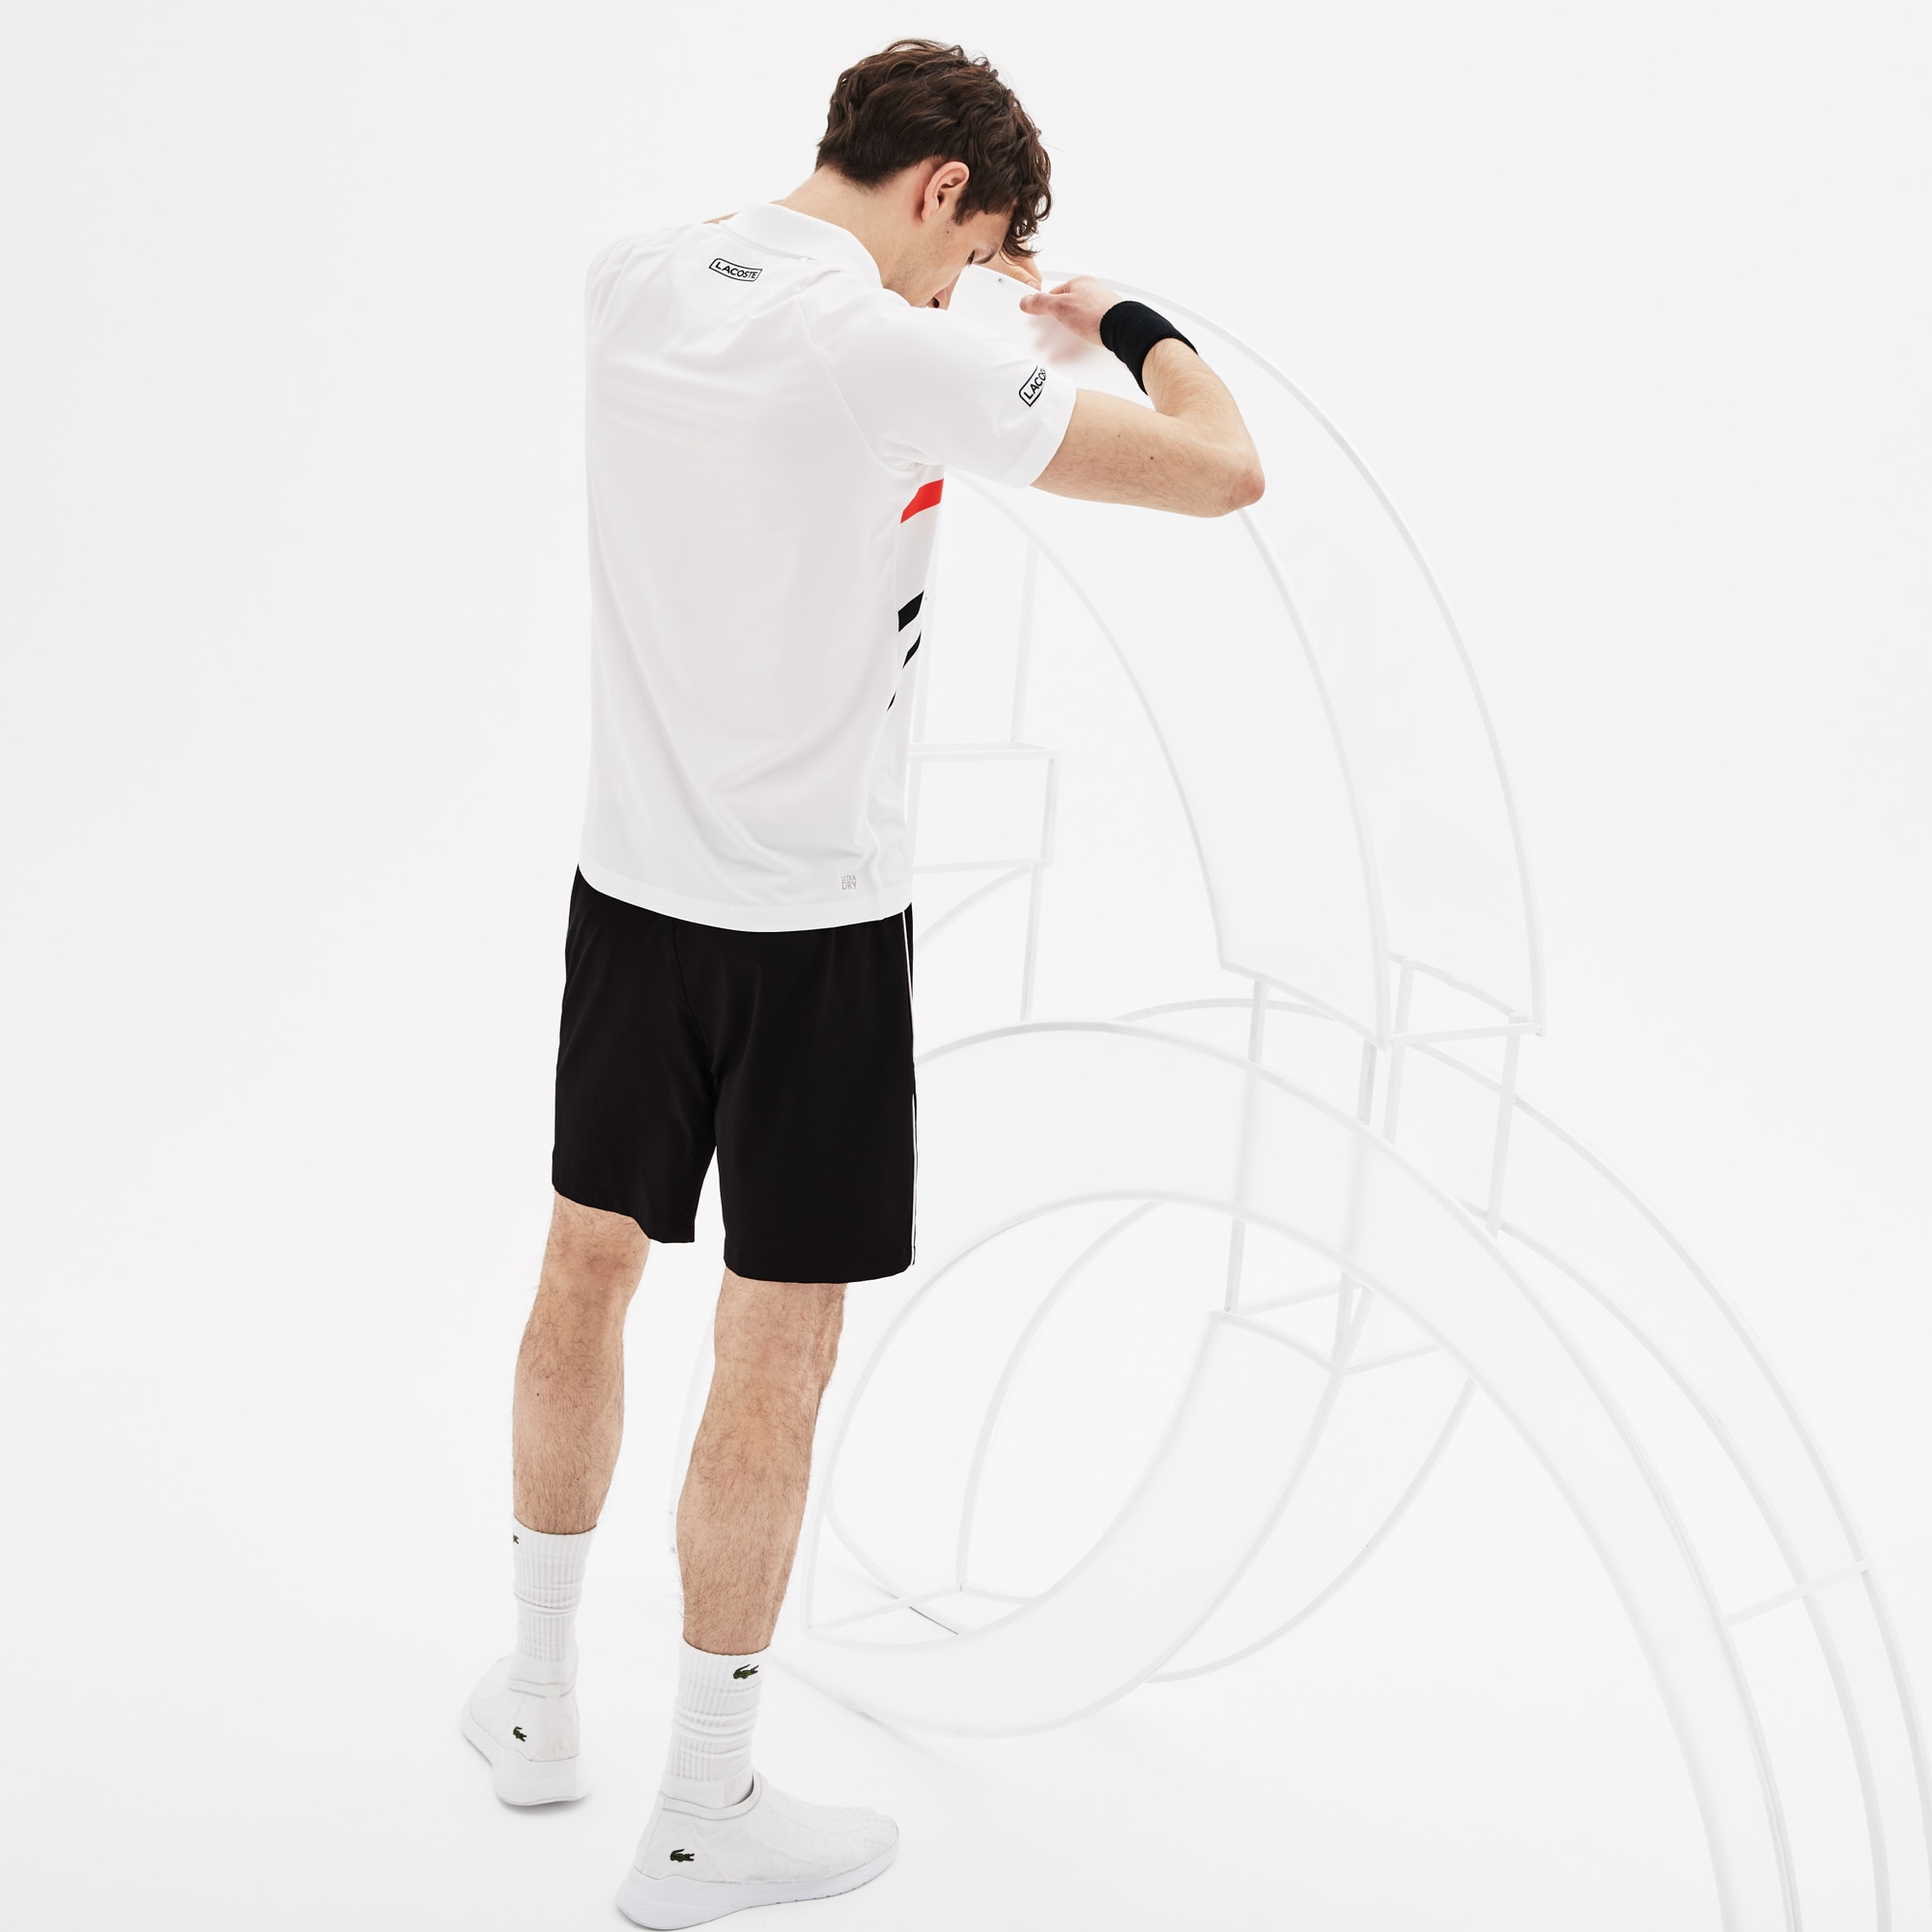 Men's Lacoste SPORT NOVAK DJOKOVIC SUPPORT WITH STYLE COLLECTION...